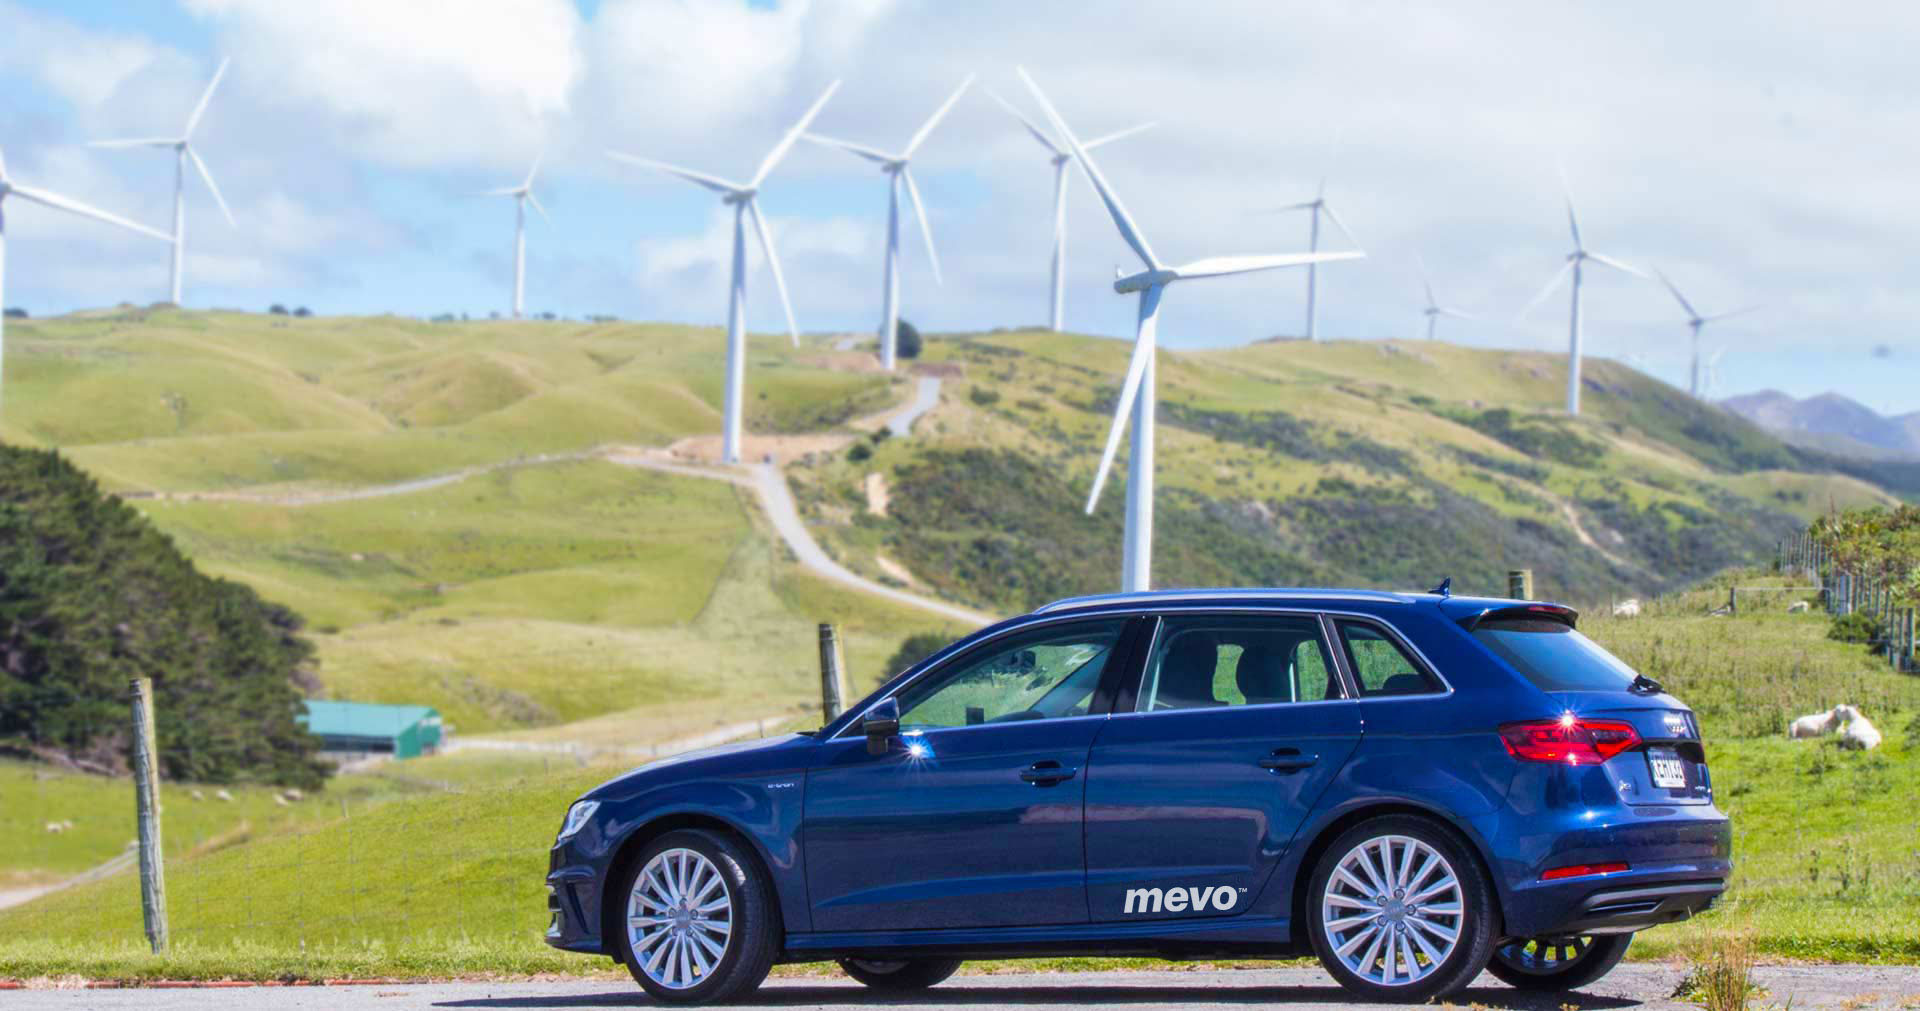 Audi A3 e-tron parked at Meridian Energy's West Wind farm